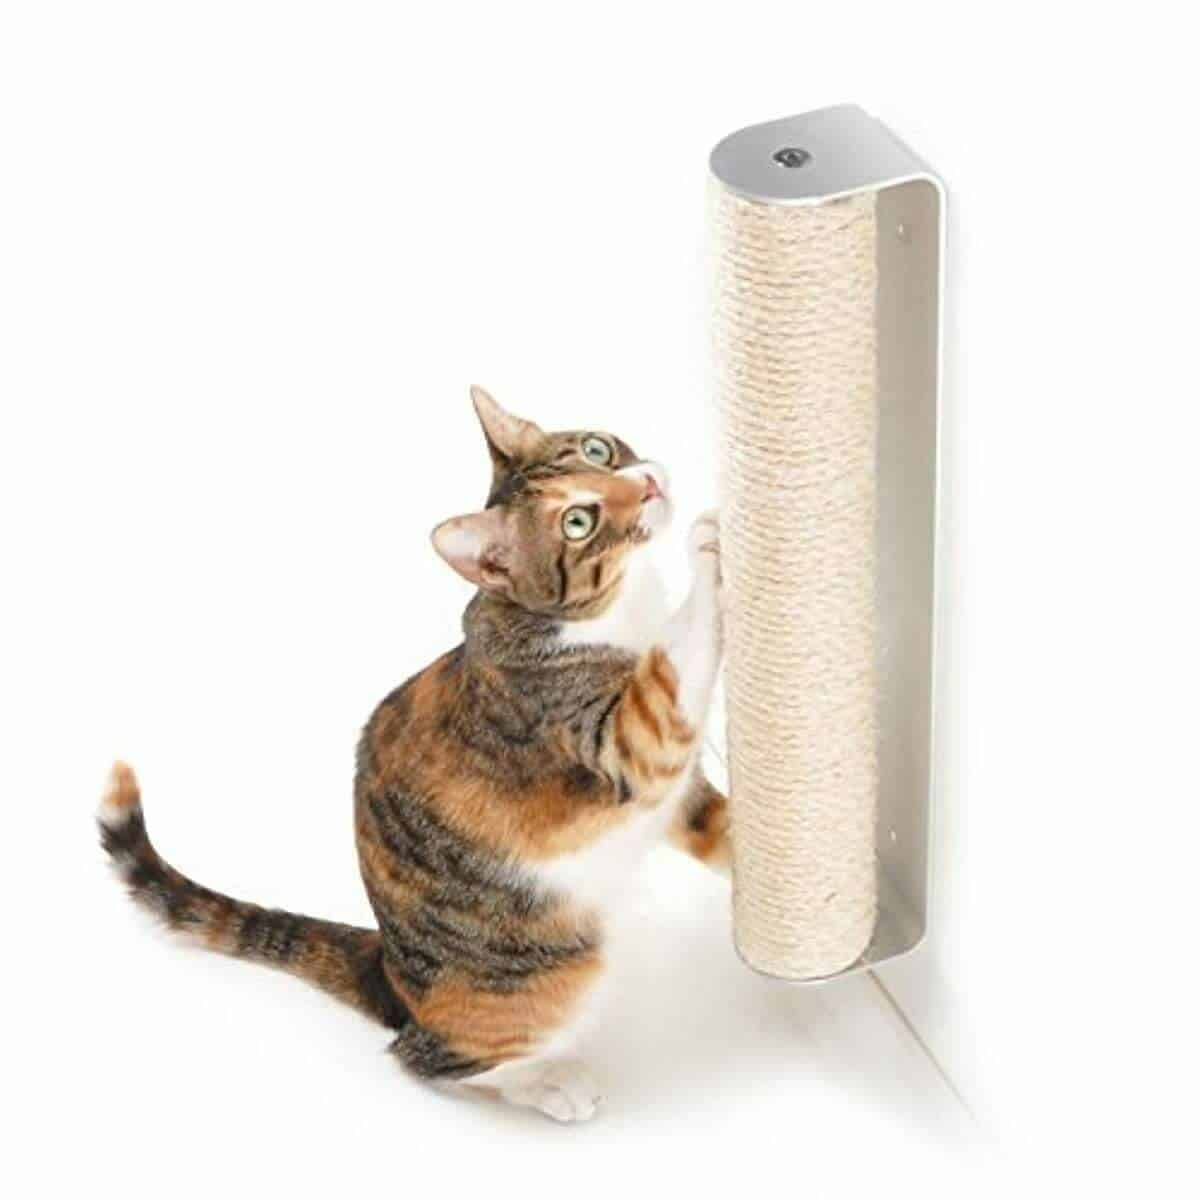 4CLAWS-Wall-Mounted-Scratching-Post-–-Best-for-Kittens